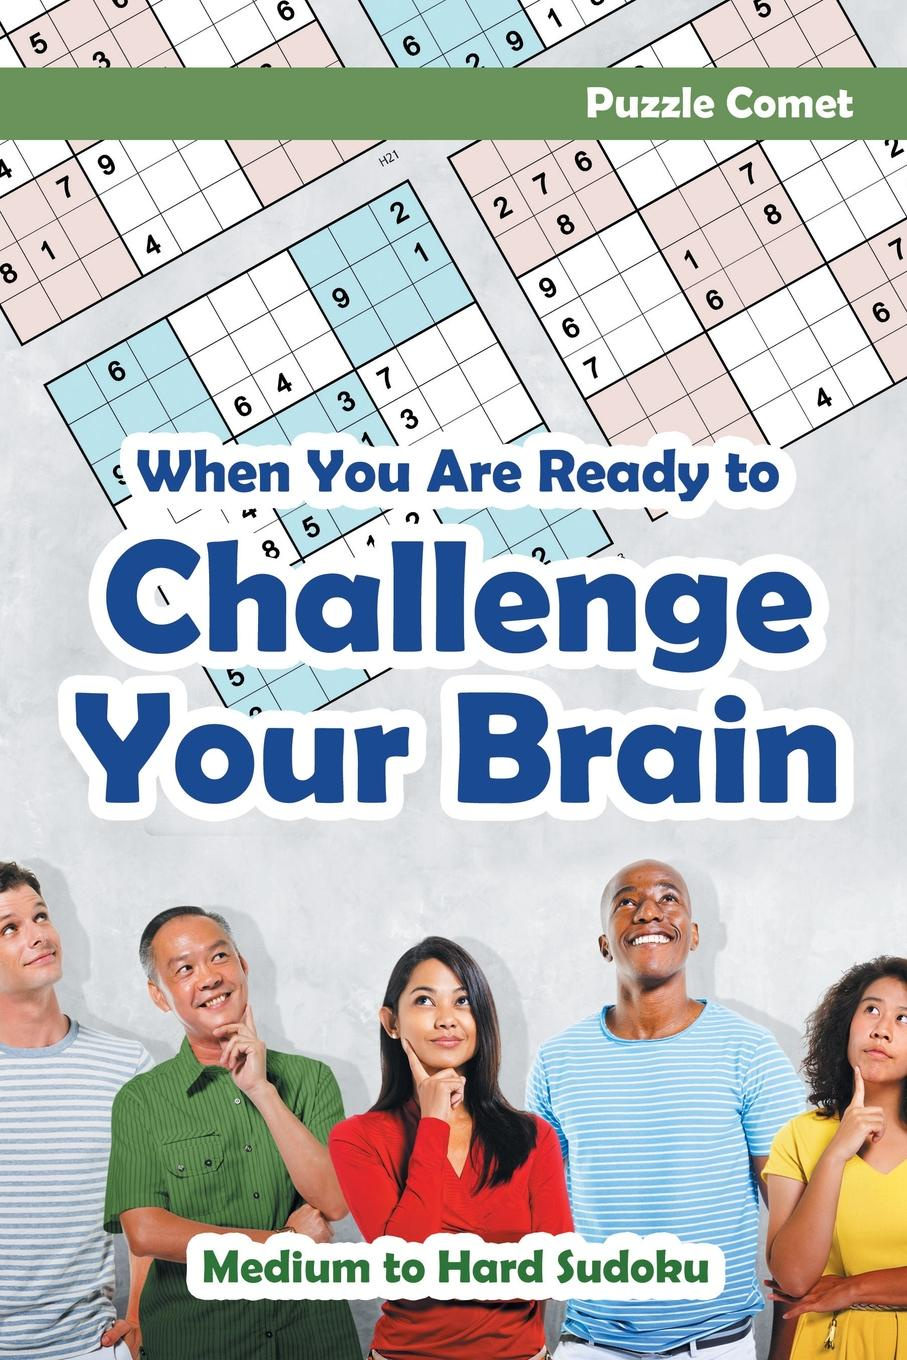 Puzzle Comet When You are Ready to Challenge Your Brain Medium Hard Sudoku